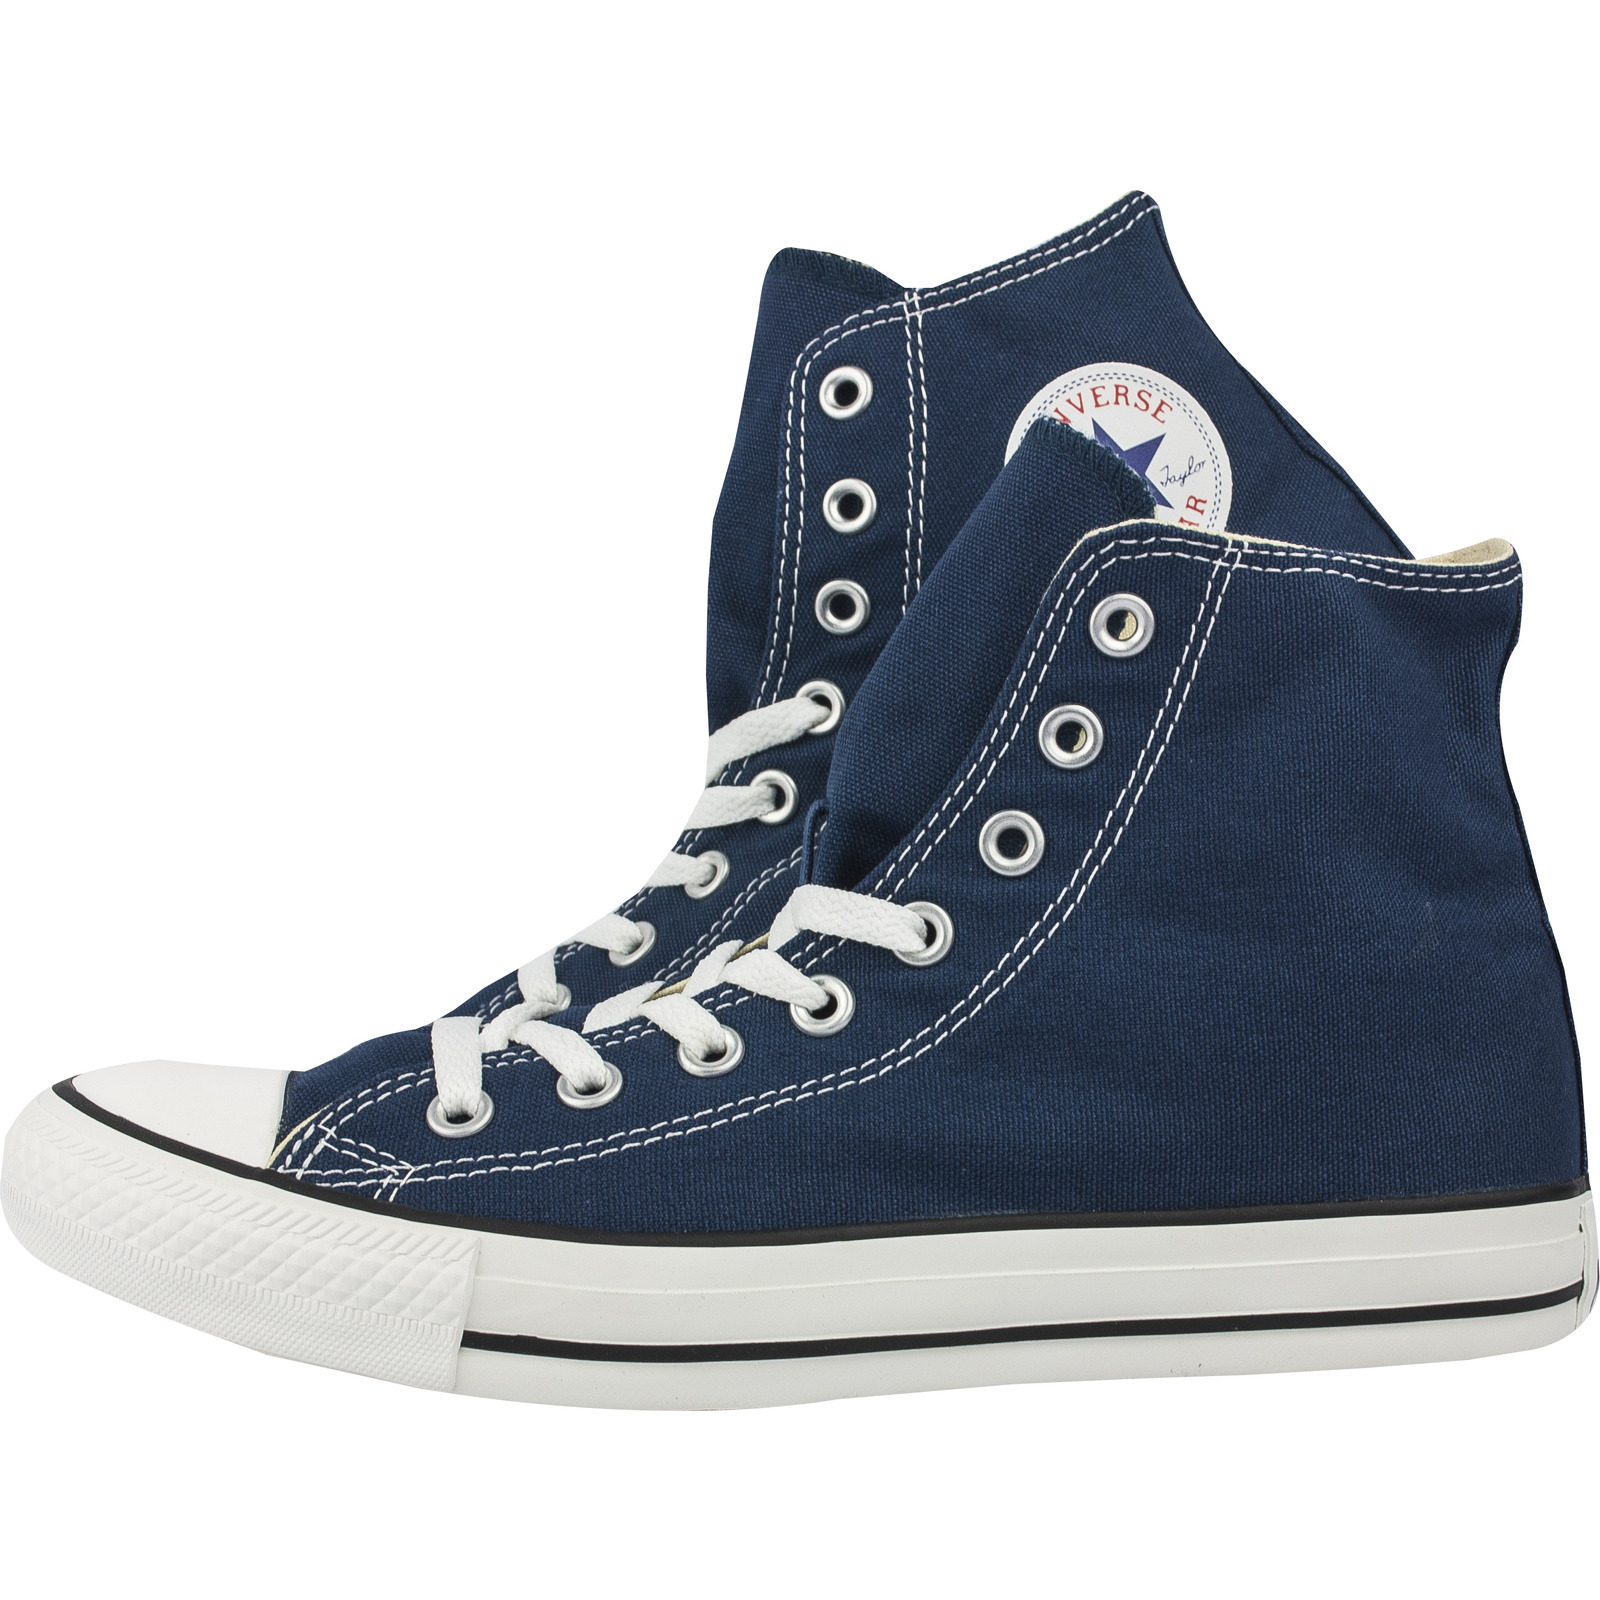 Details about Converse Classic Chuck Taylor All Star Navy HI High Tops  Trainer Lace Up NEW   2d87836ec